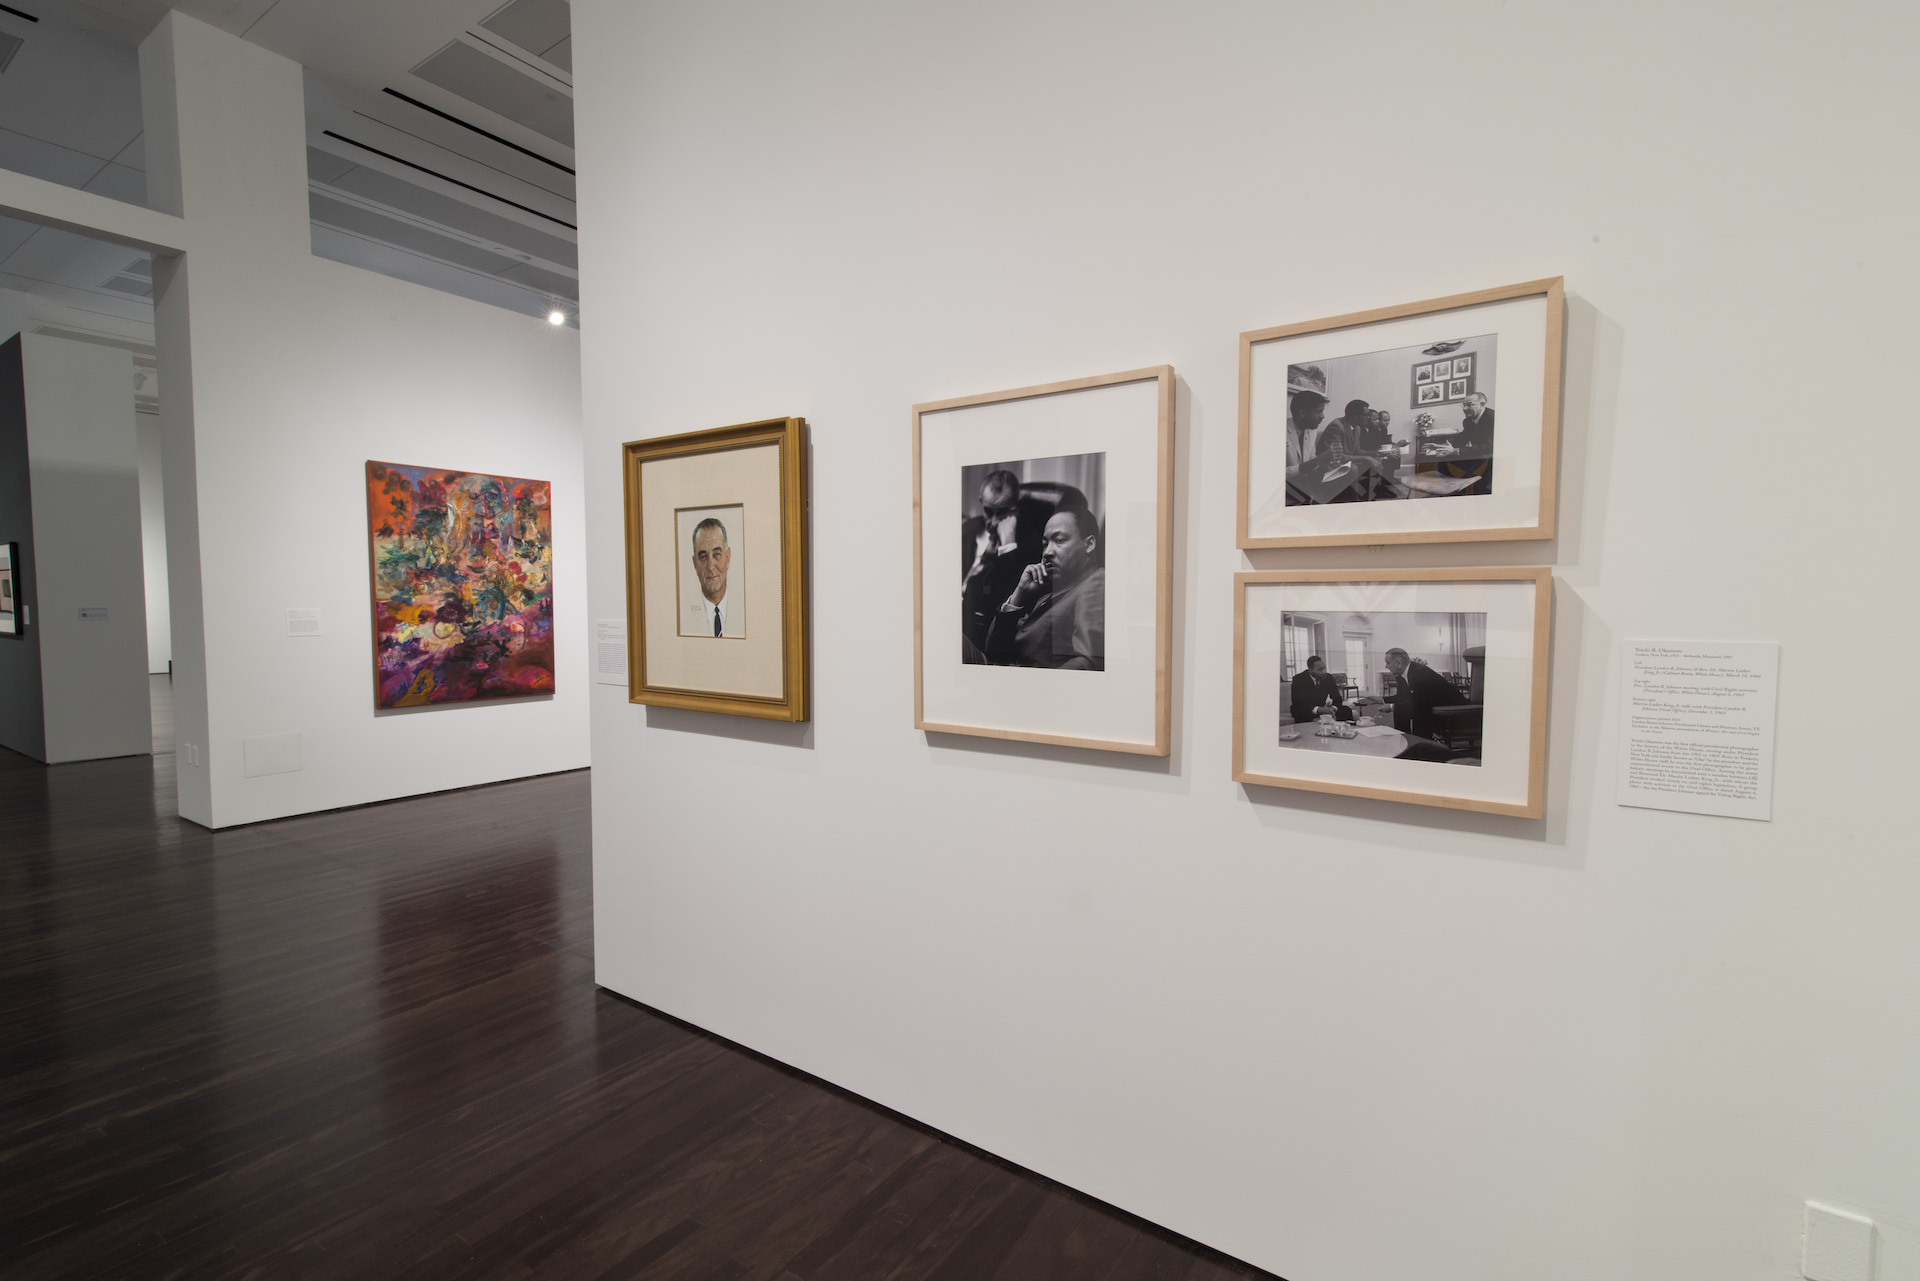 """Installation view of """"Witness: Art and Civil Rights in the Sixties"""" at theBlanton Museum of Art. 4 Photos featuring Martin Luther King Jr and Lyndon B Johnson are on display."""